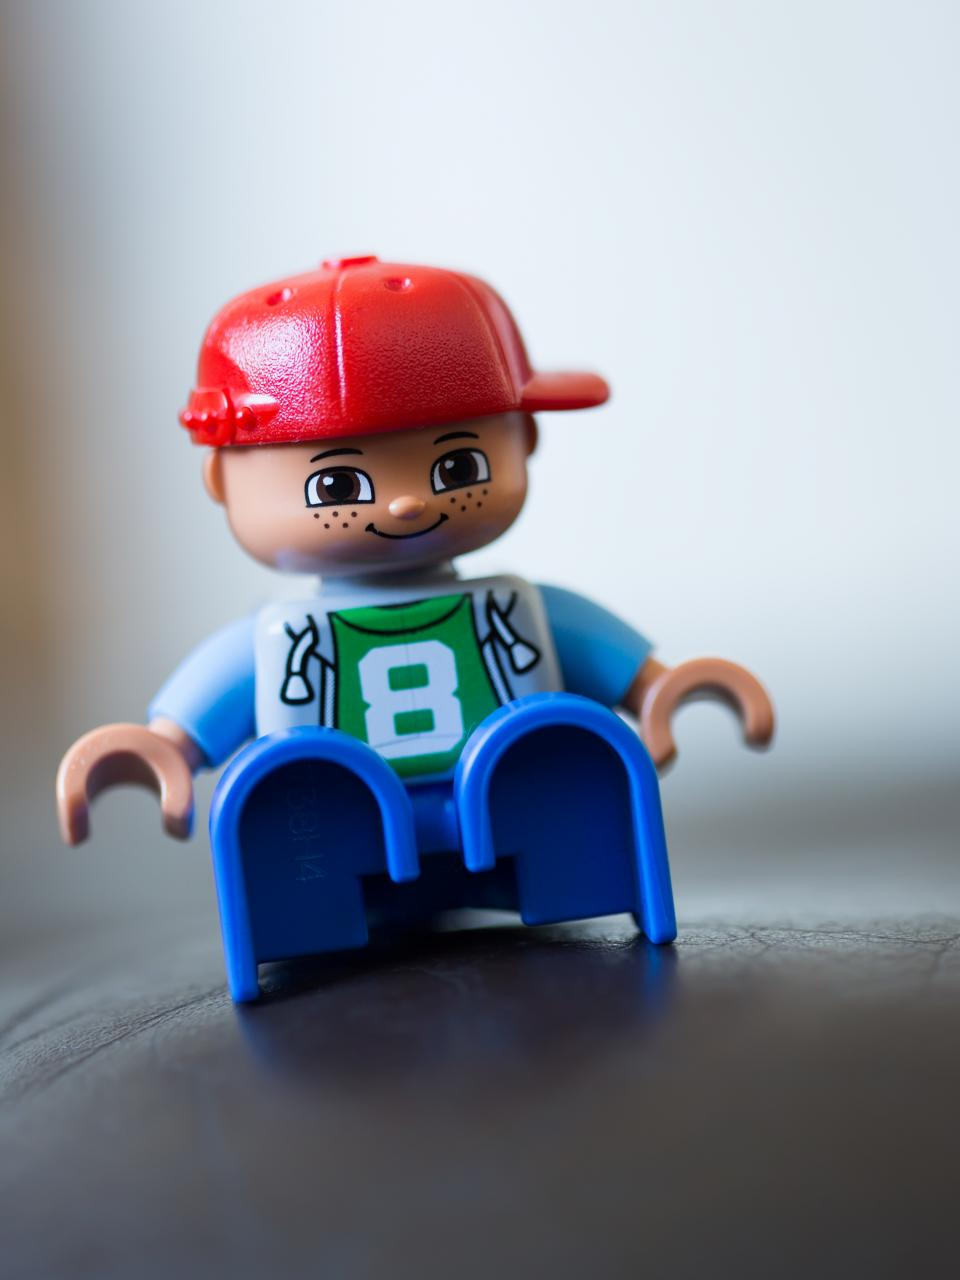 still items things toys lego boy urban hip cap bokeh